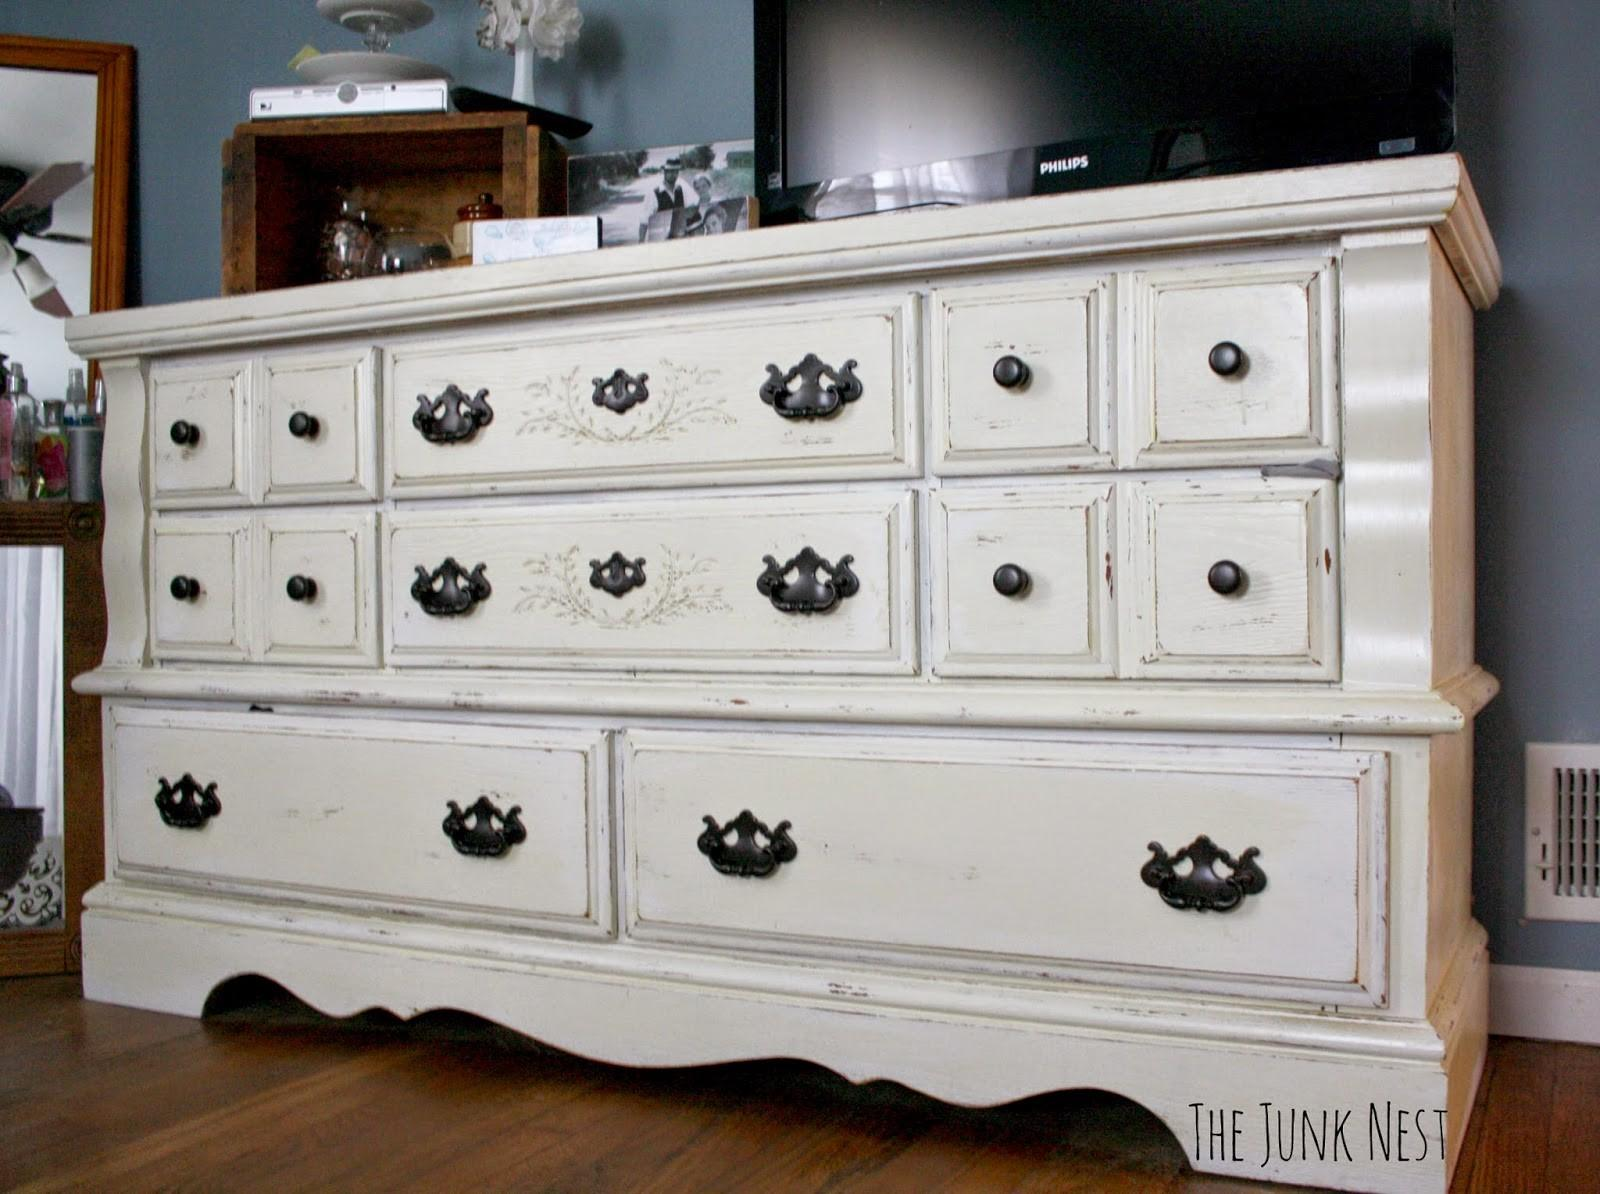 Junk Nest Diy Chalk Painted Dresser